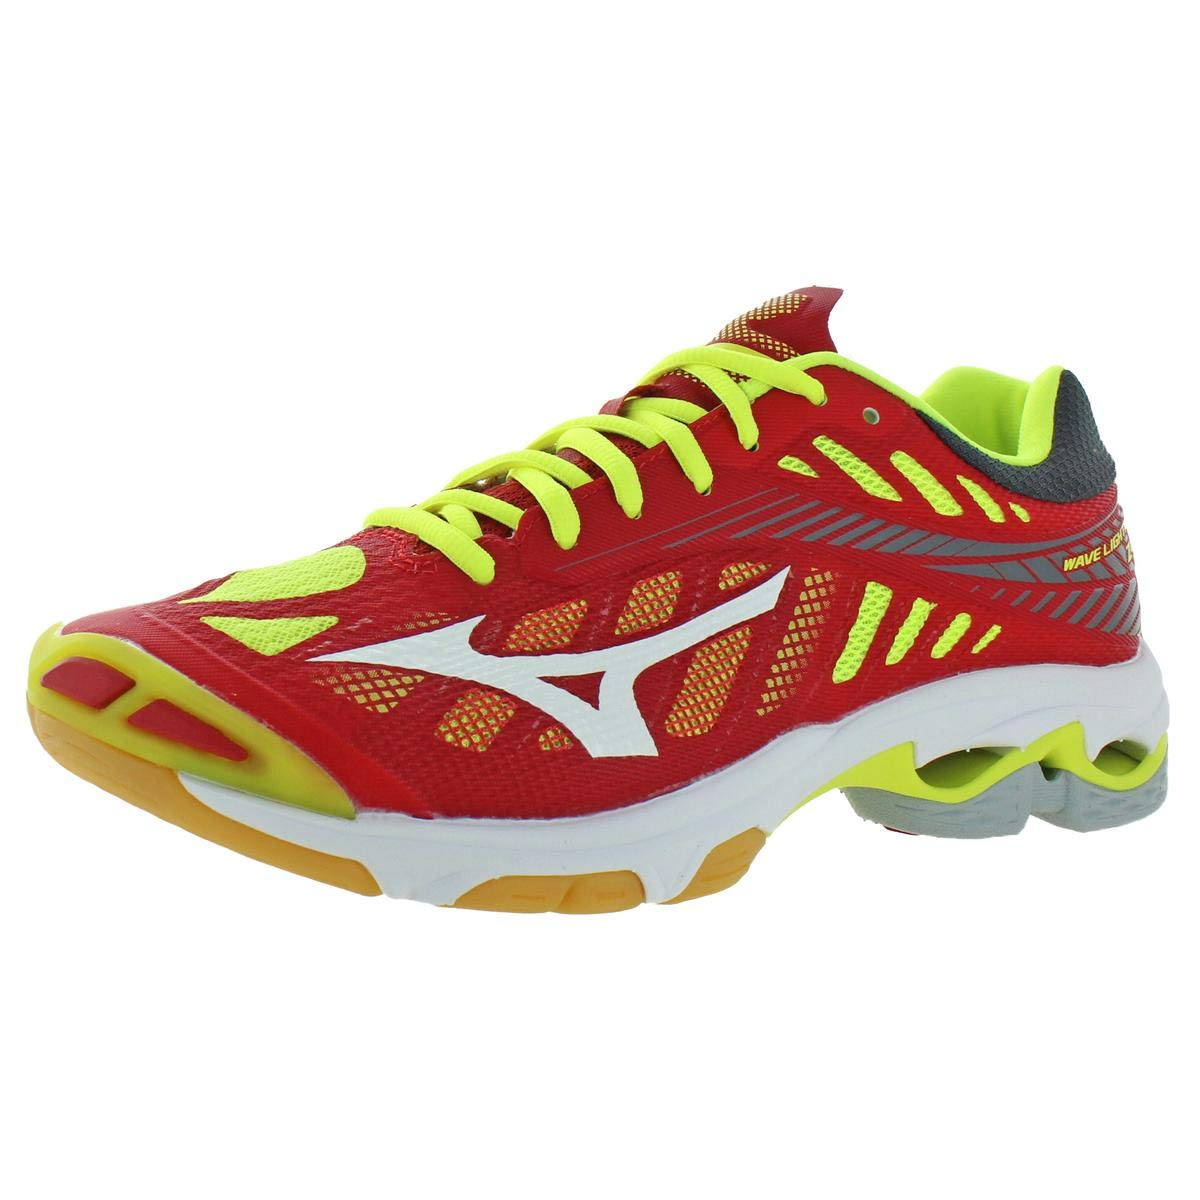 Mizuno Mens Wave Lightening Z4 Trainers Volleyball Shoes Red 8.5 Medium (D) by Mizuno